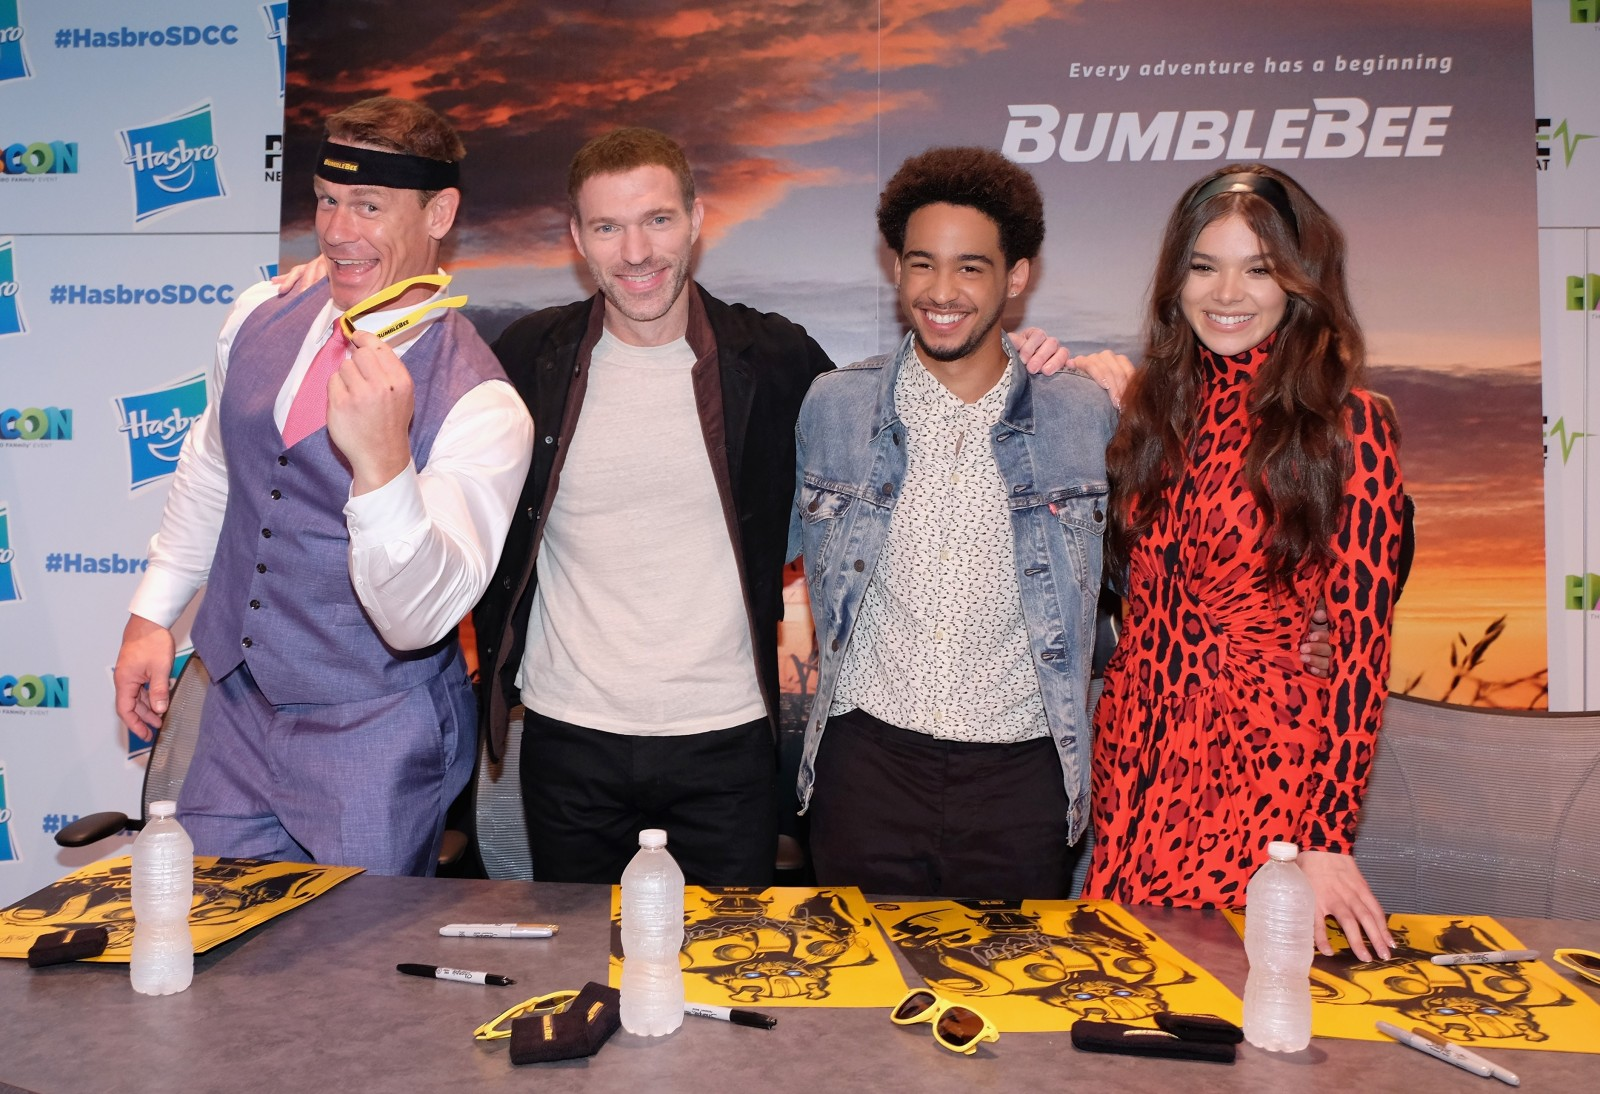 Transformers News: Official Transformers Bumblebee Movie Poster and #SDCC2018 Event Images #BumblebeeMovie